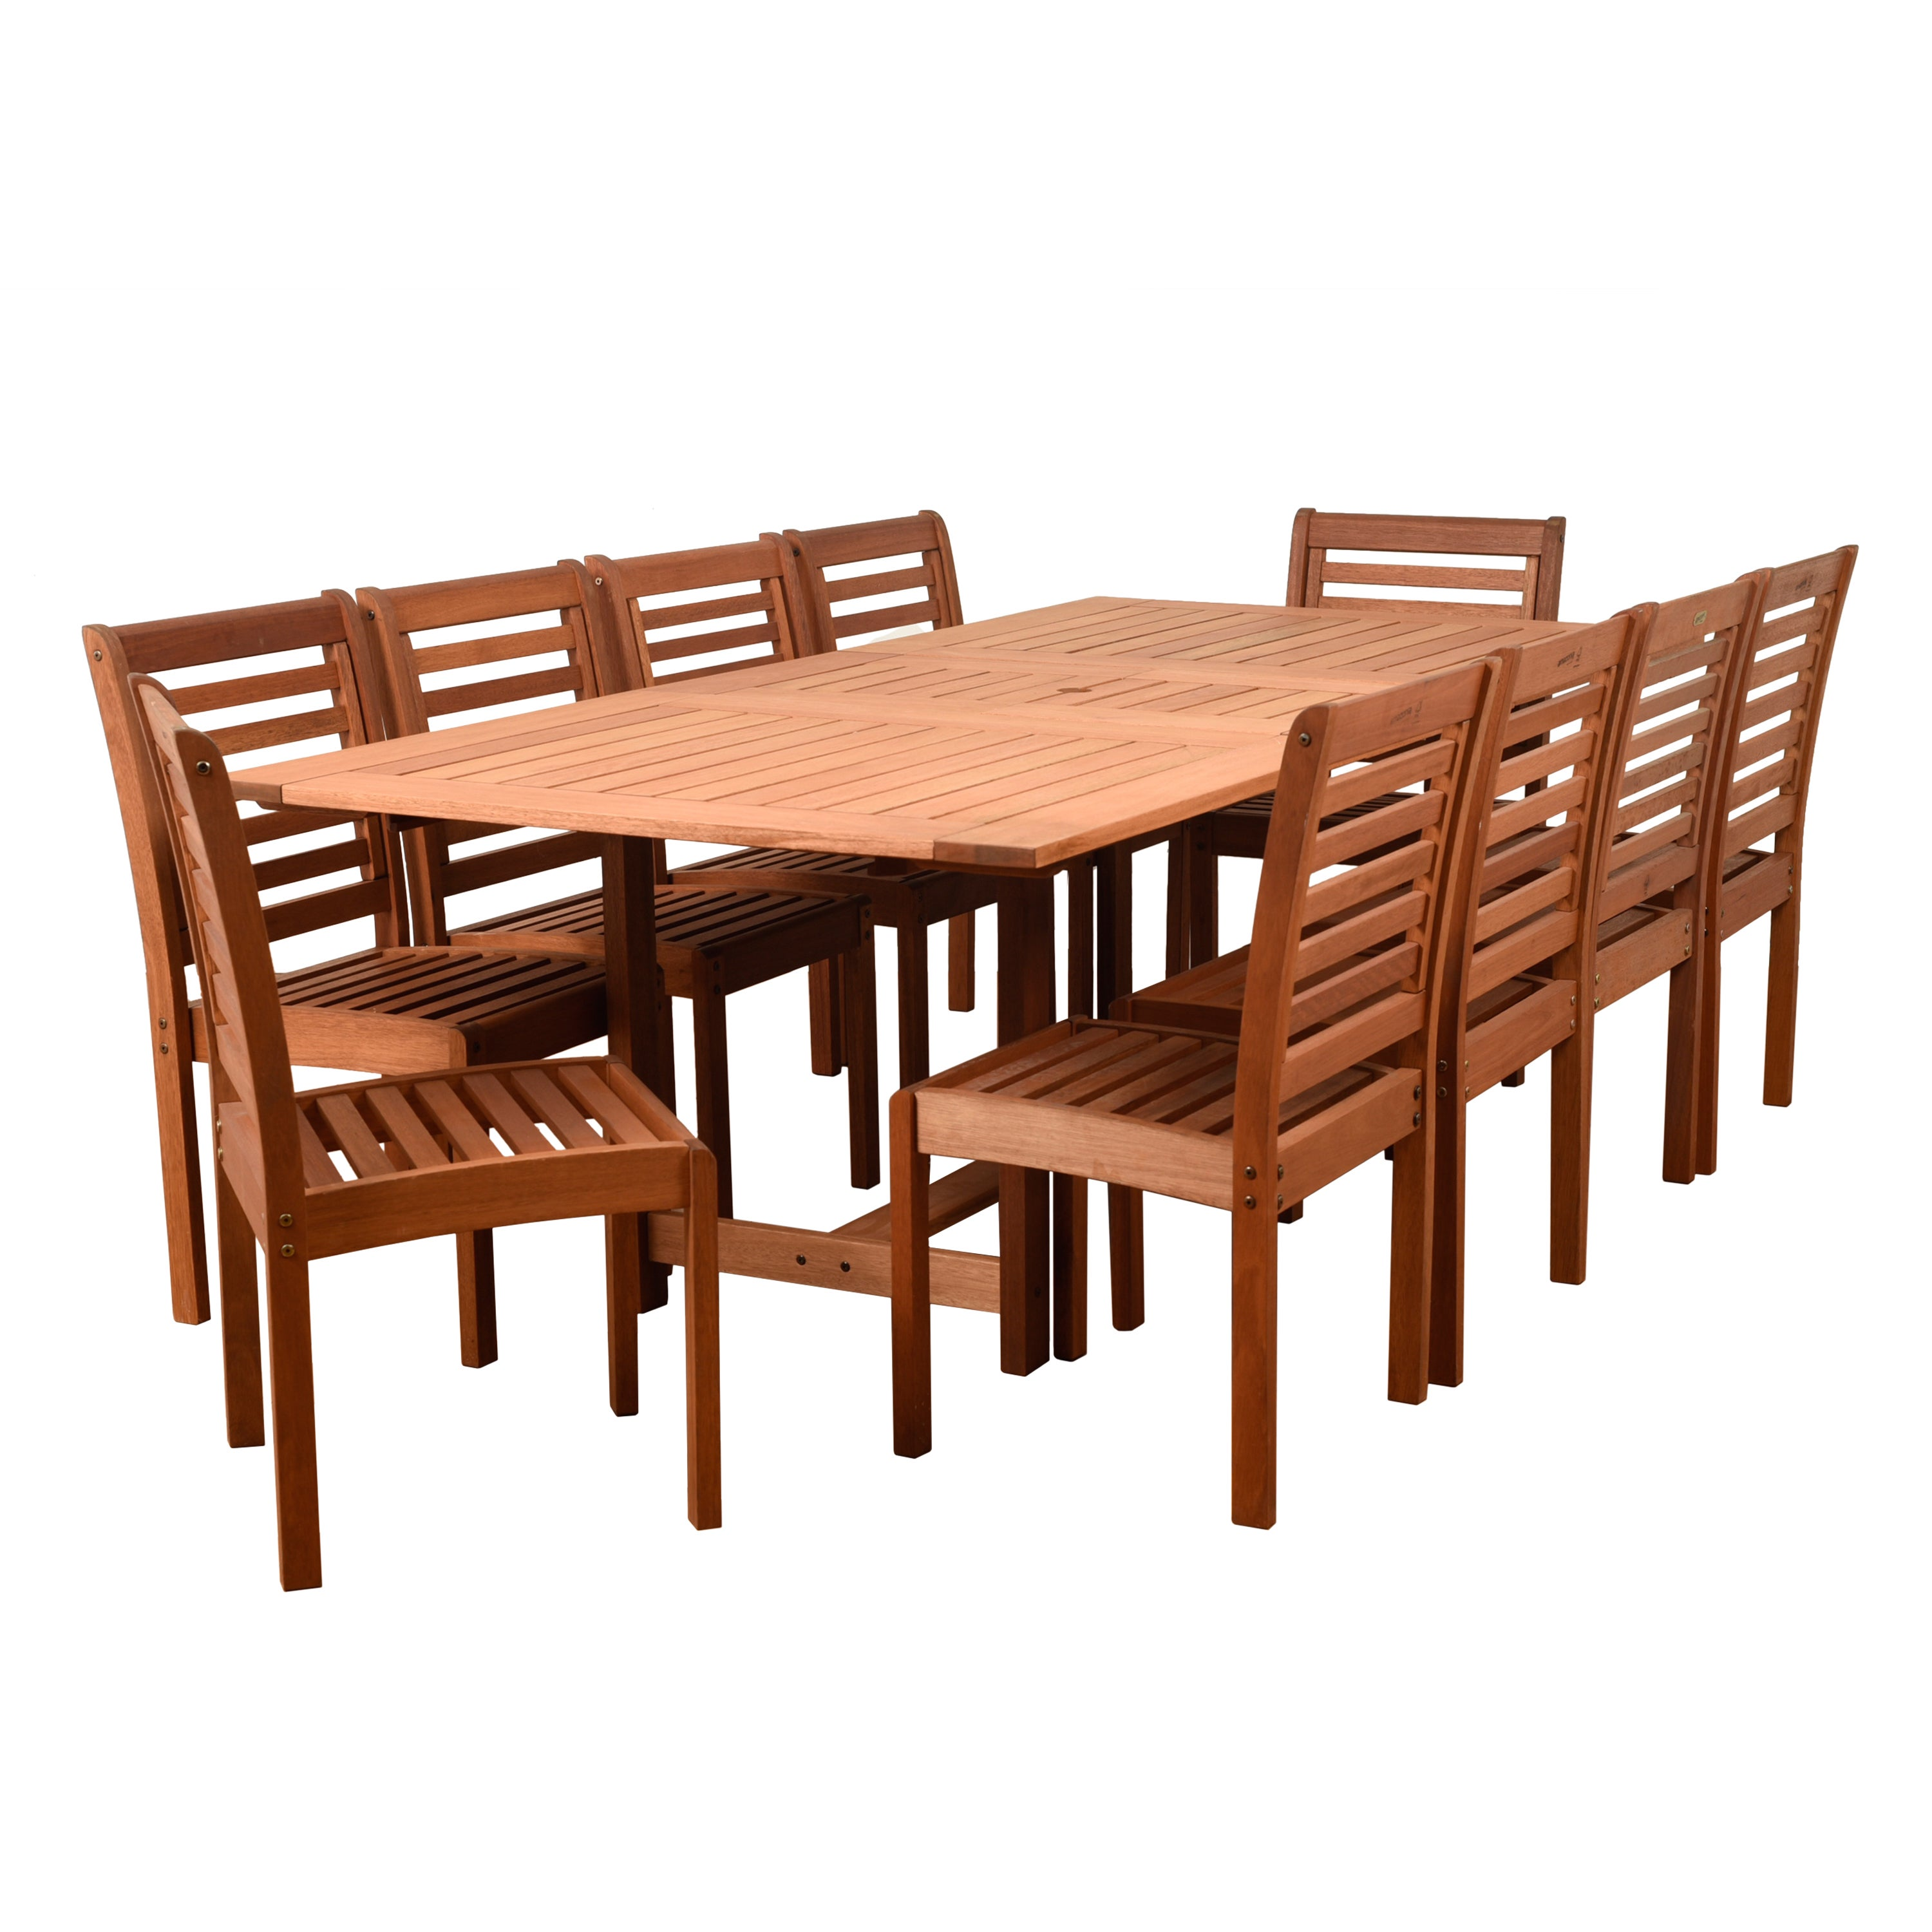 Merveilleux Shop Amazonia Nadia 11 Piece Eucalyptus Rectangular Patio Dining Set   Free  Shipping Today   Overstock.com   15050005